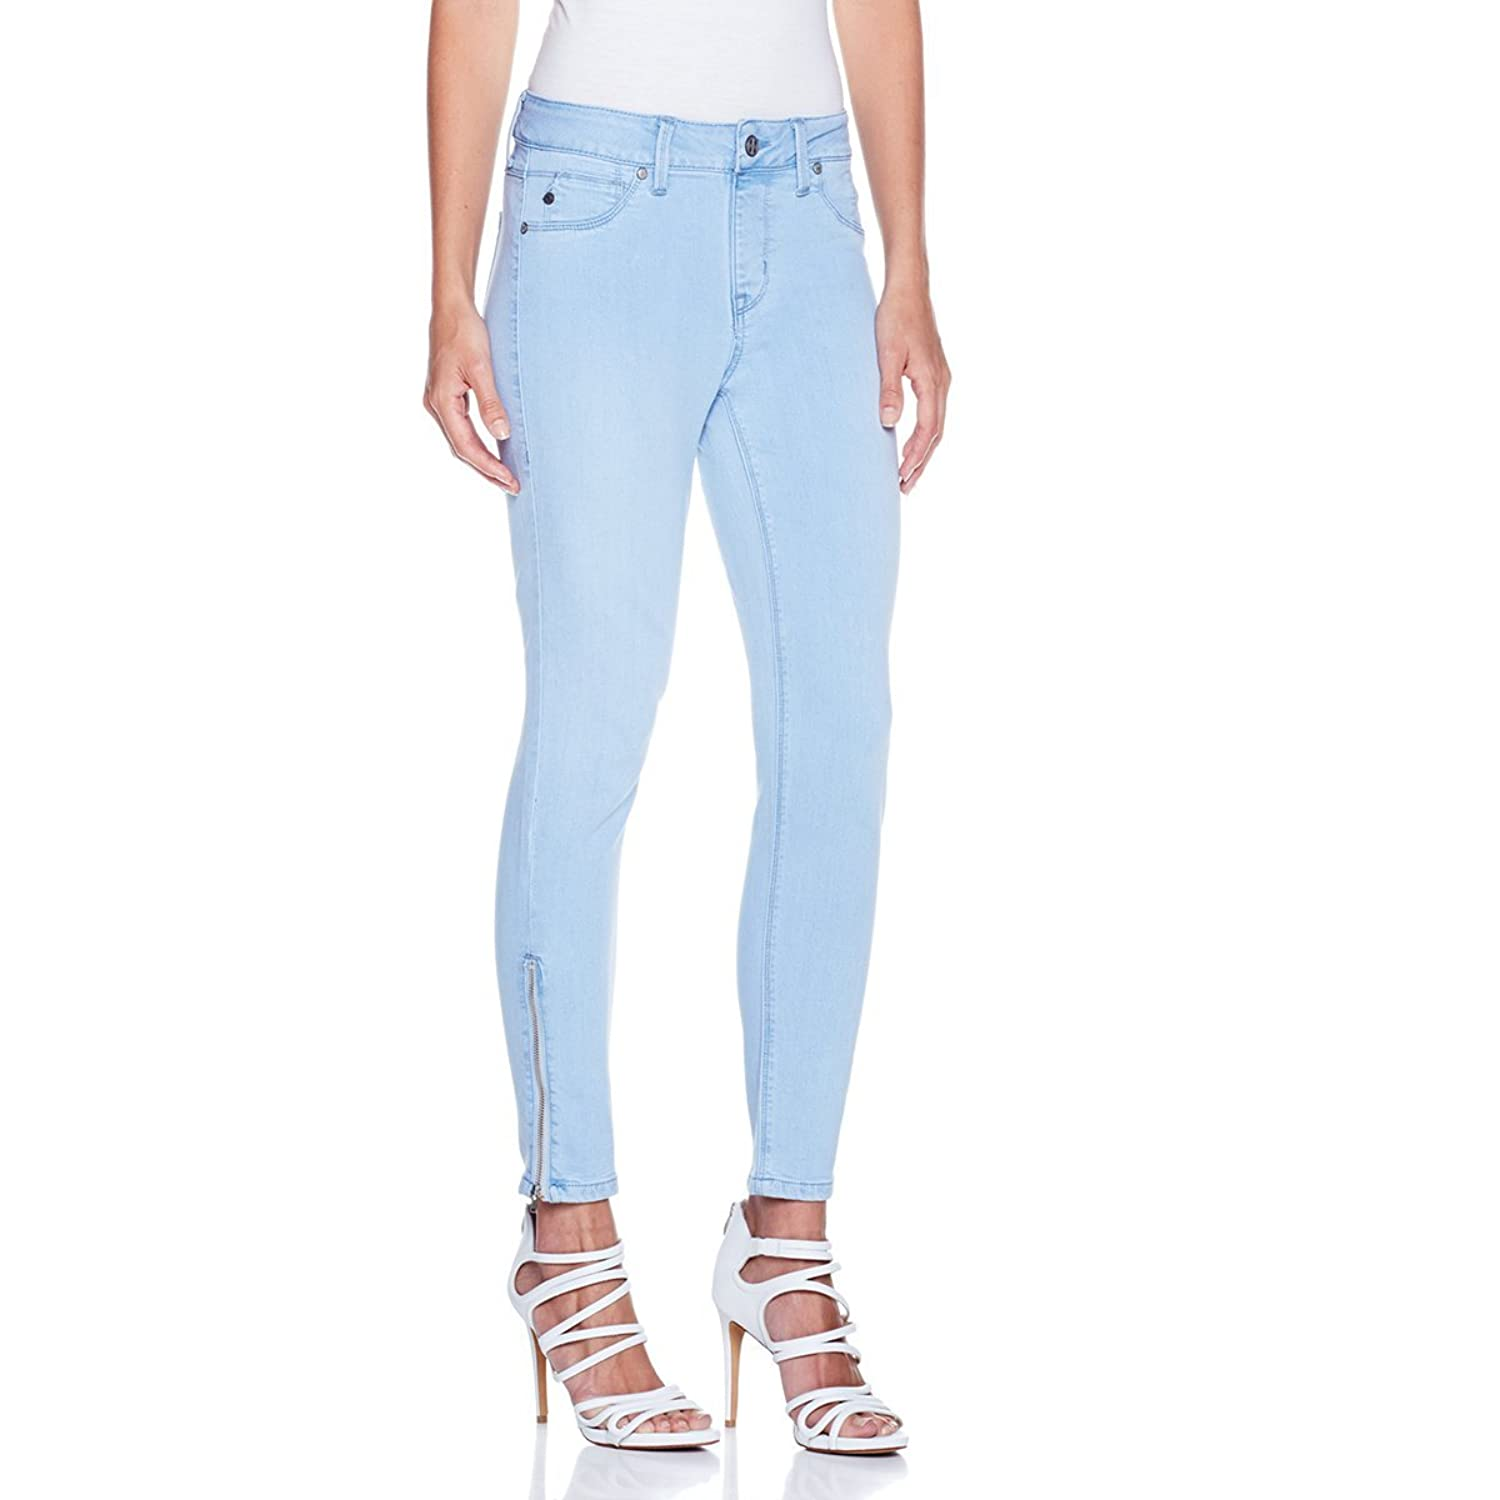 Hot in Hollywood MEGASTRETCH Ankle-Zip Capri - 324404, Chambray 3X